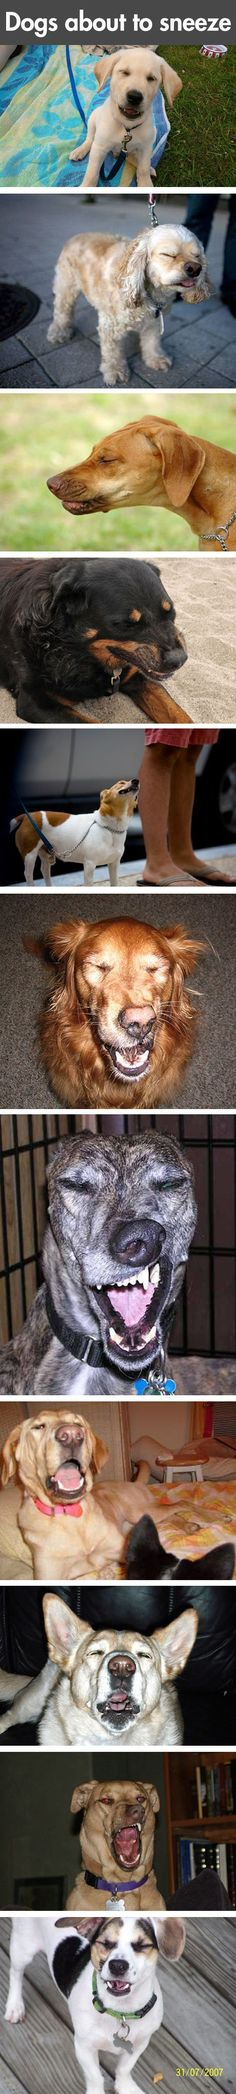 Dogs about to sneeze funny cute animals dogs puppy animal lol puppies humor funny animlas